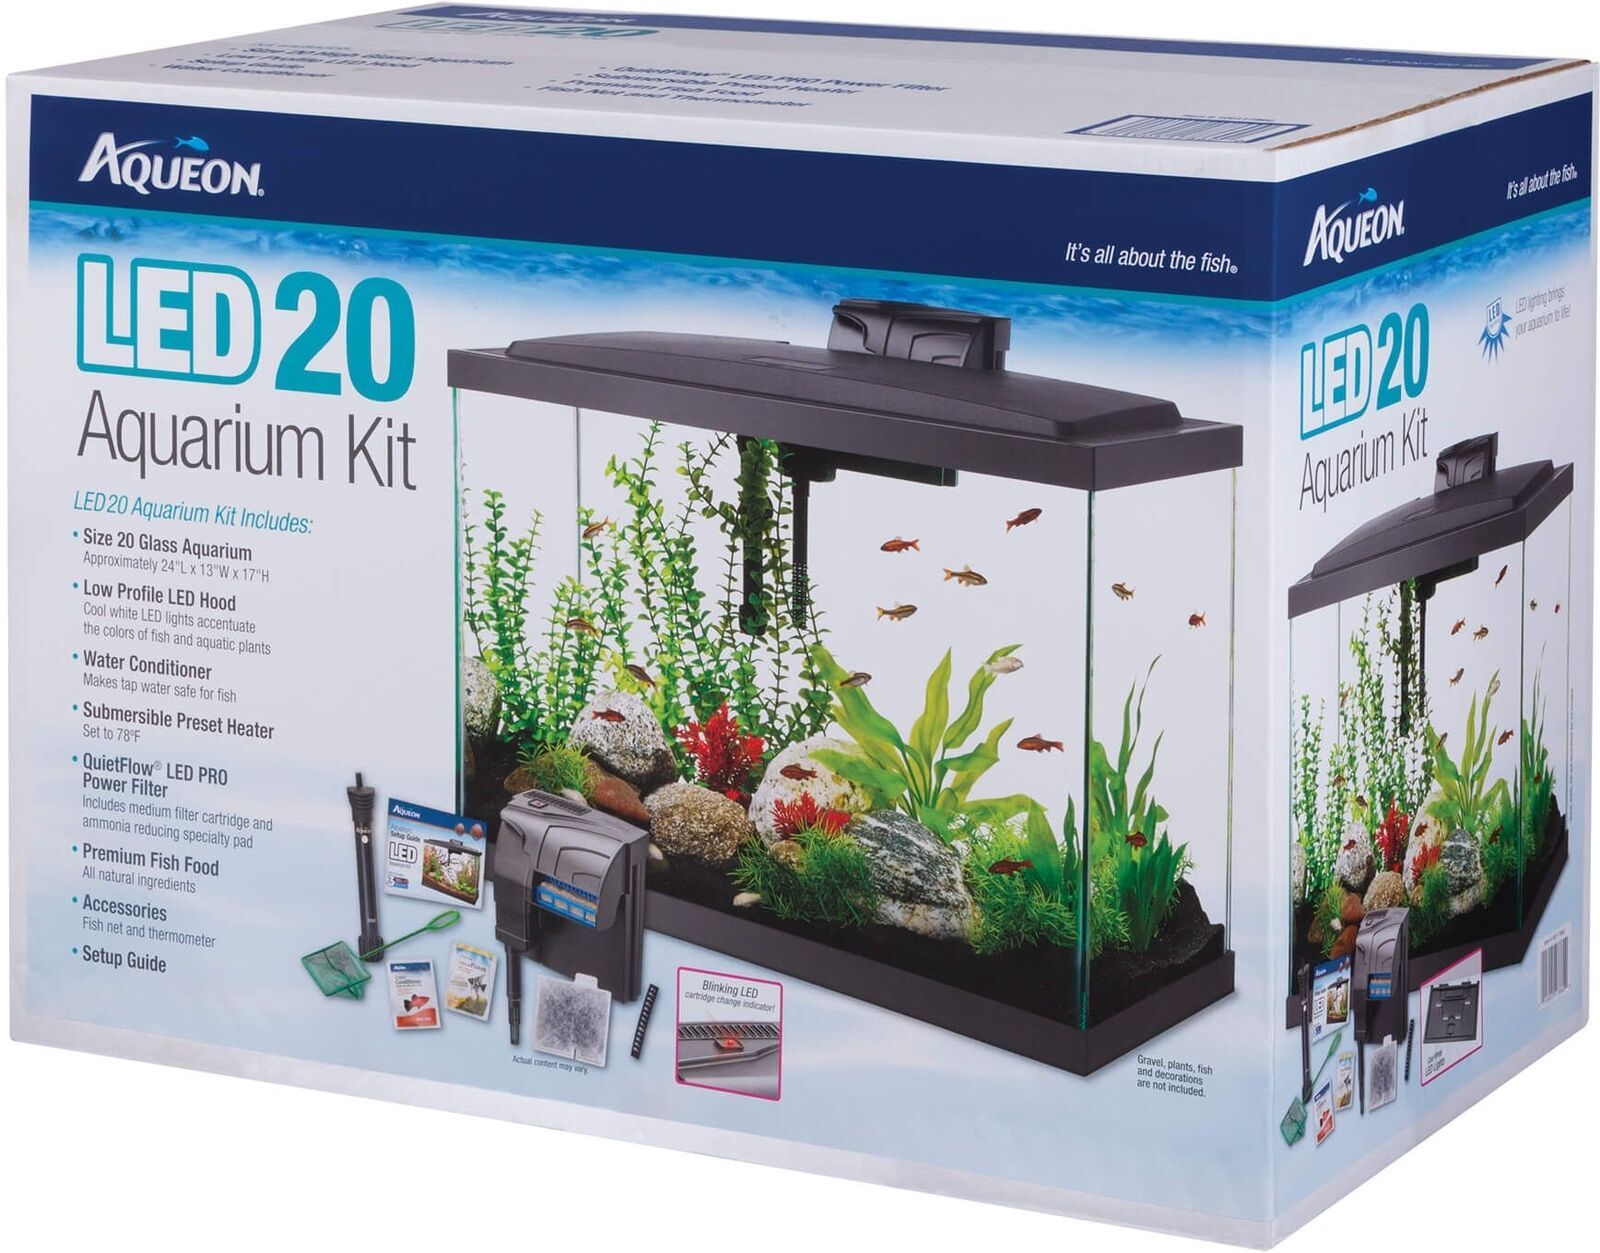 marine an to suspended blog rack a tanks aquarium contemporary how of lights kit office with some suspension tank aquariums light or ceiling the from rimless best fixture depot hang are looking